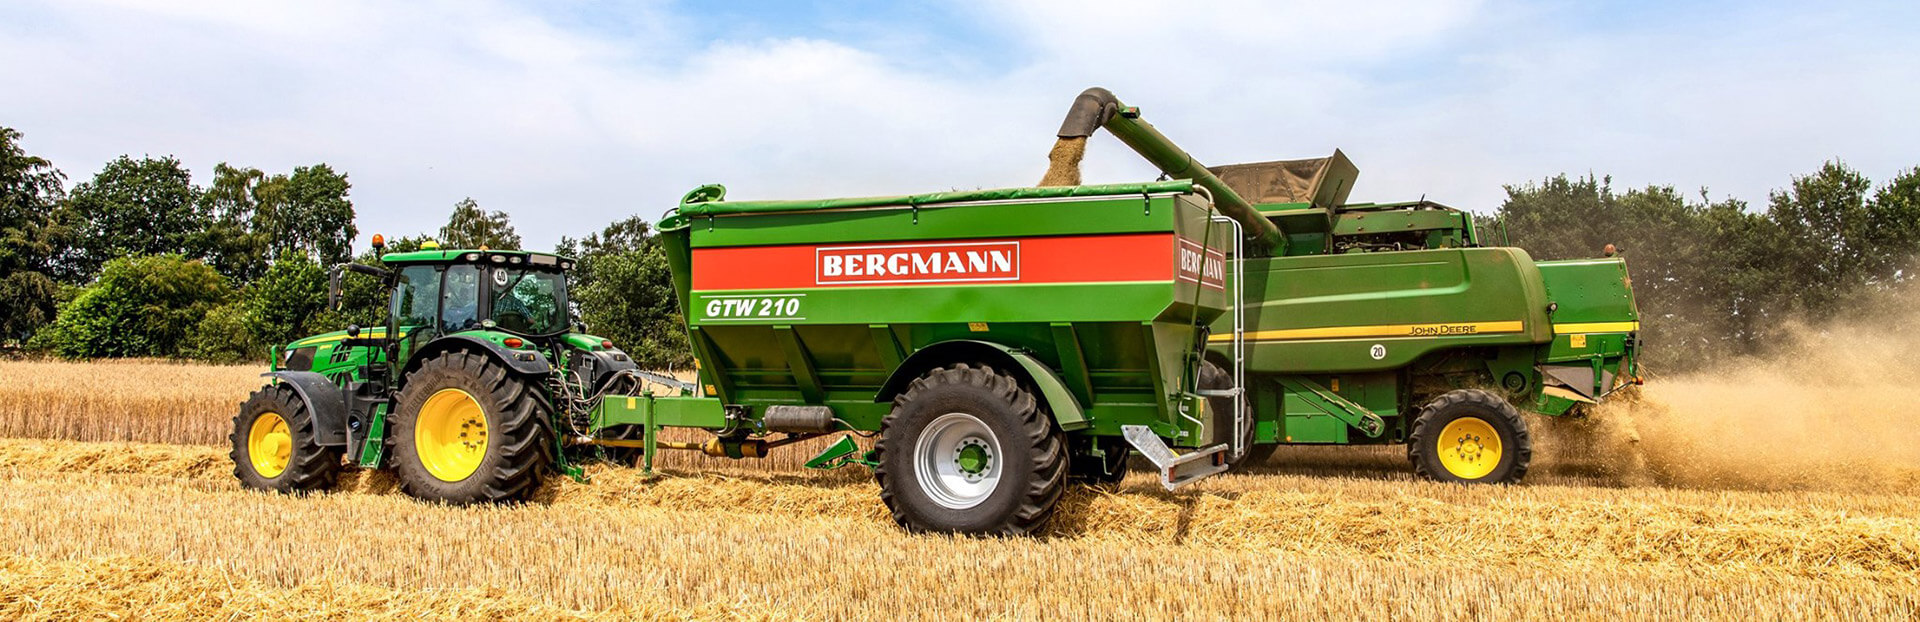 Bergmann grain chaser updated range harvest